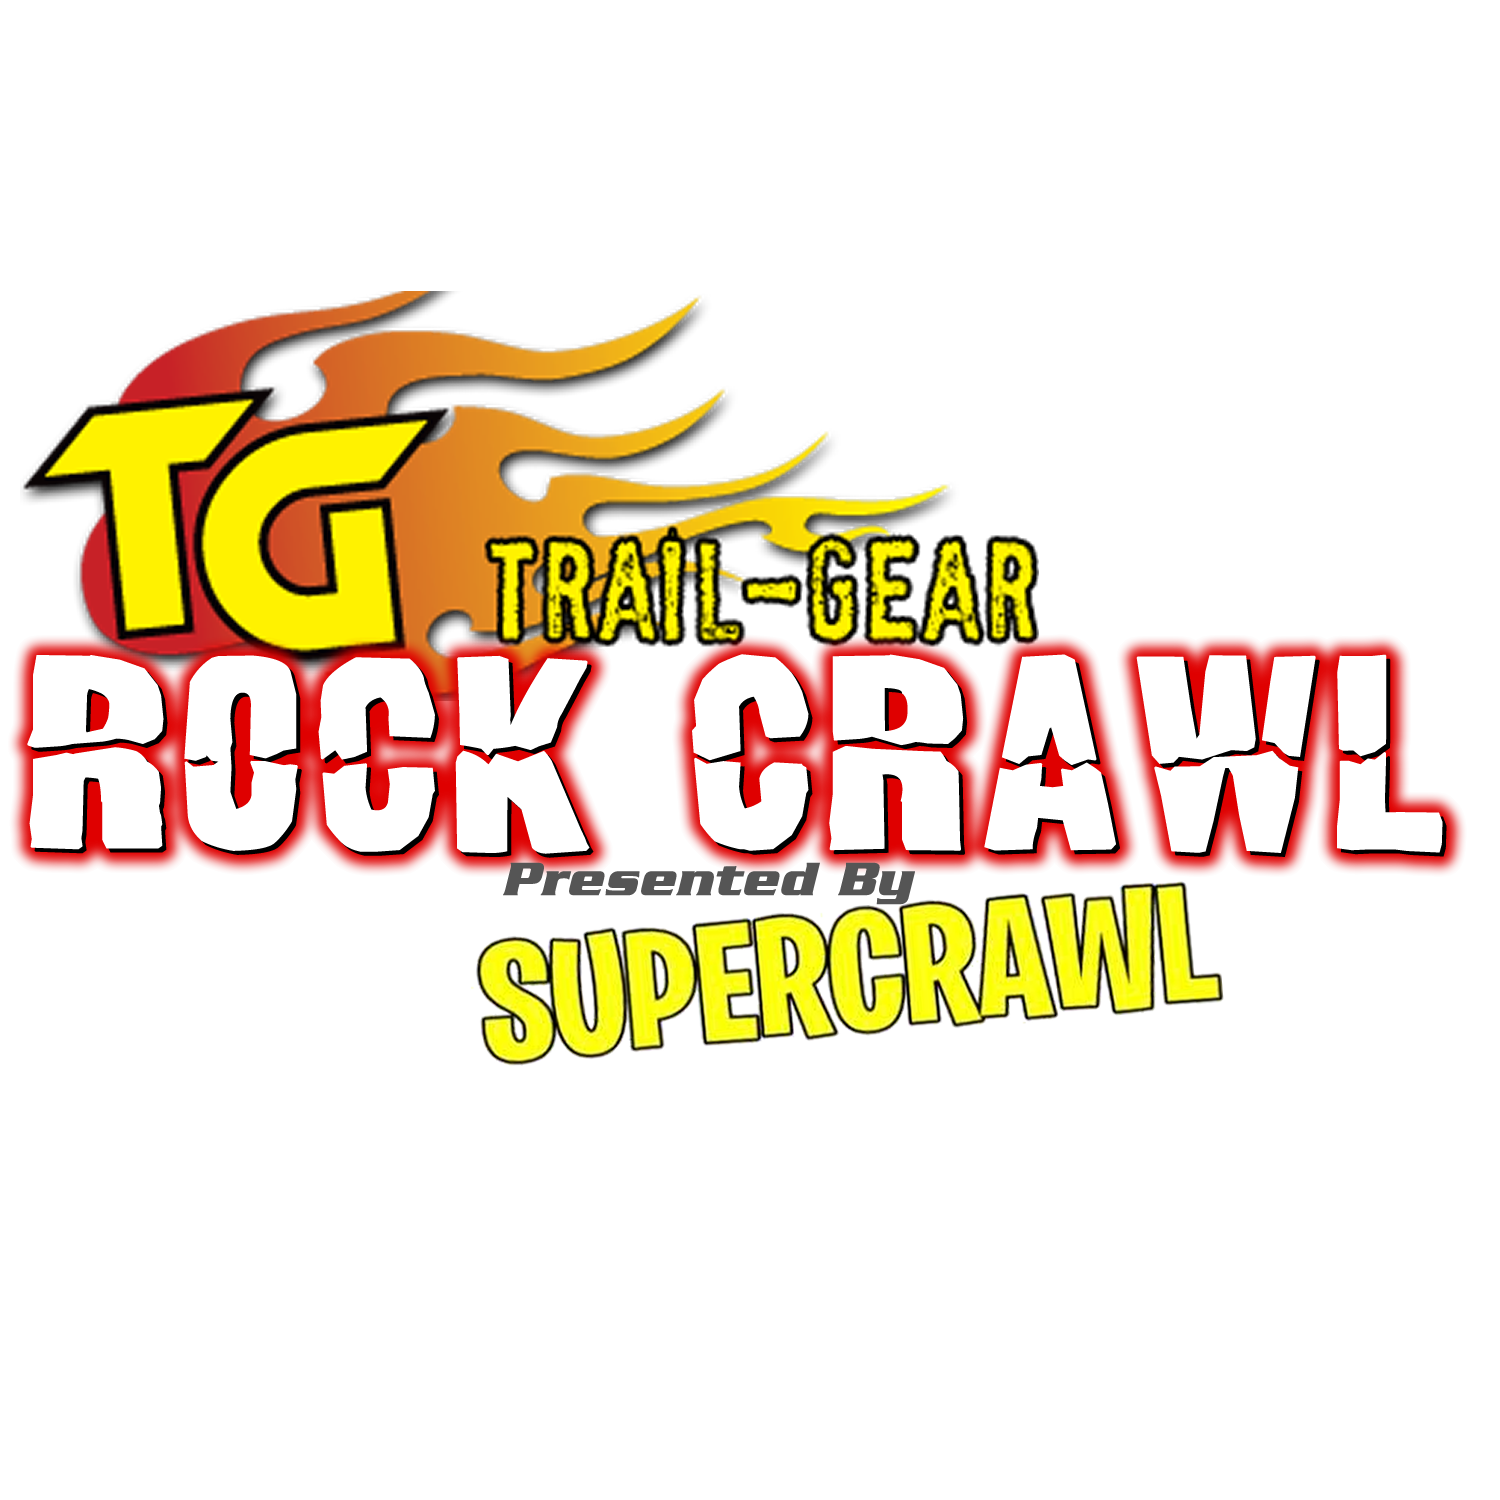 TG_Rockcrawl_Supercrawl.fw_.png